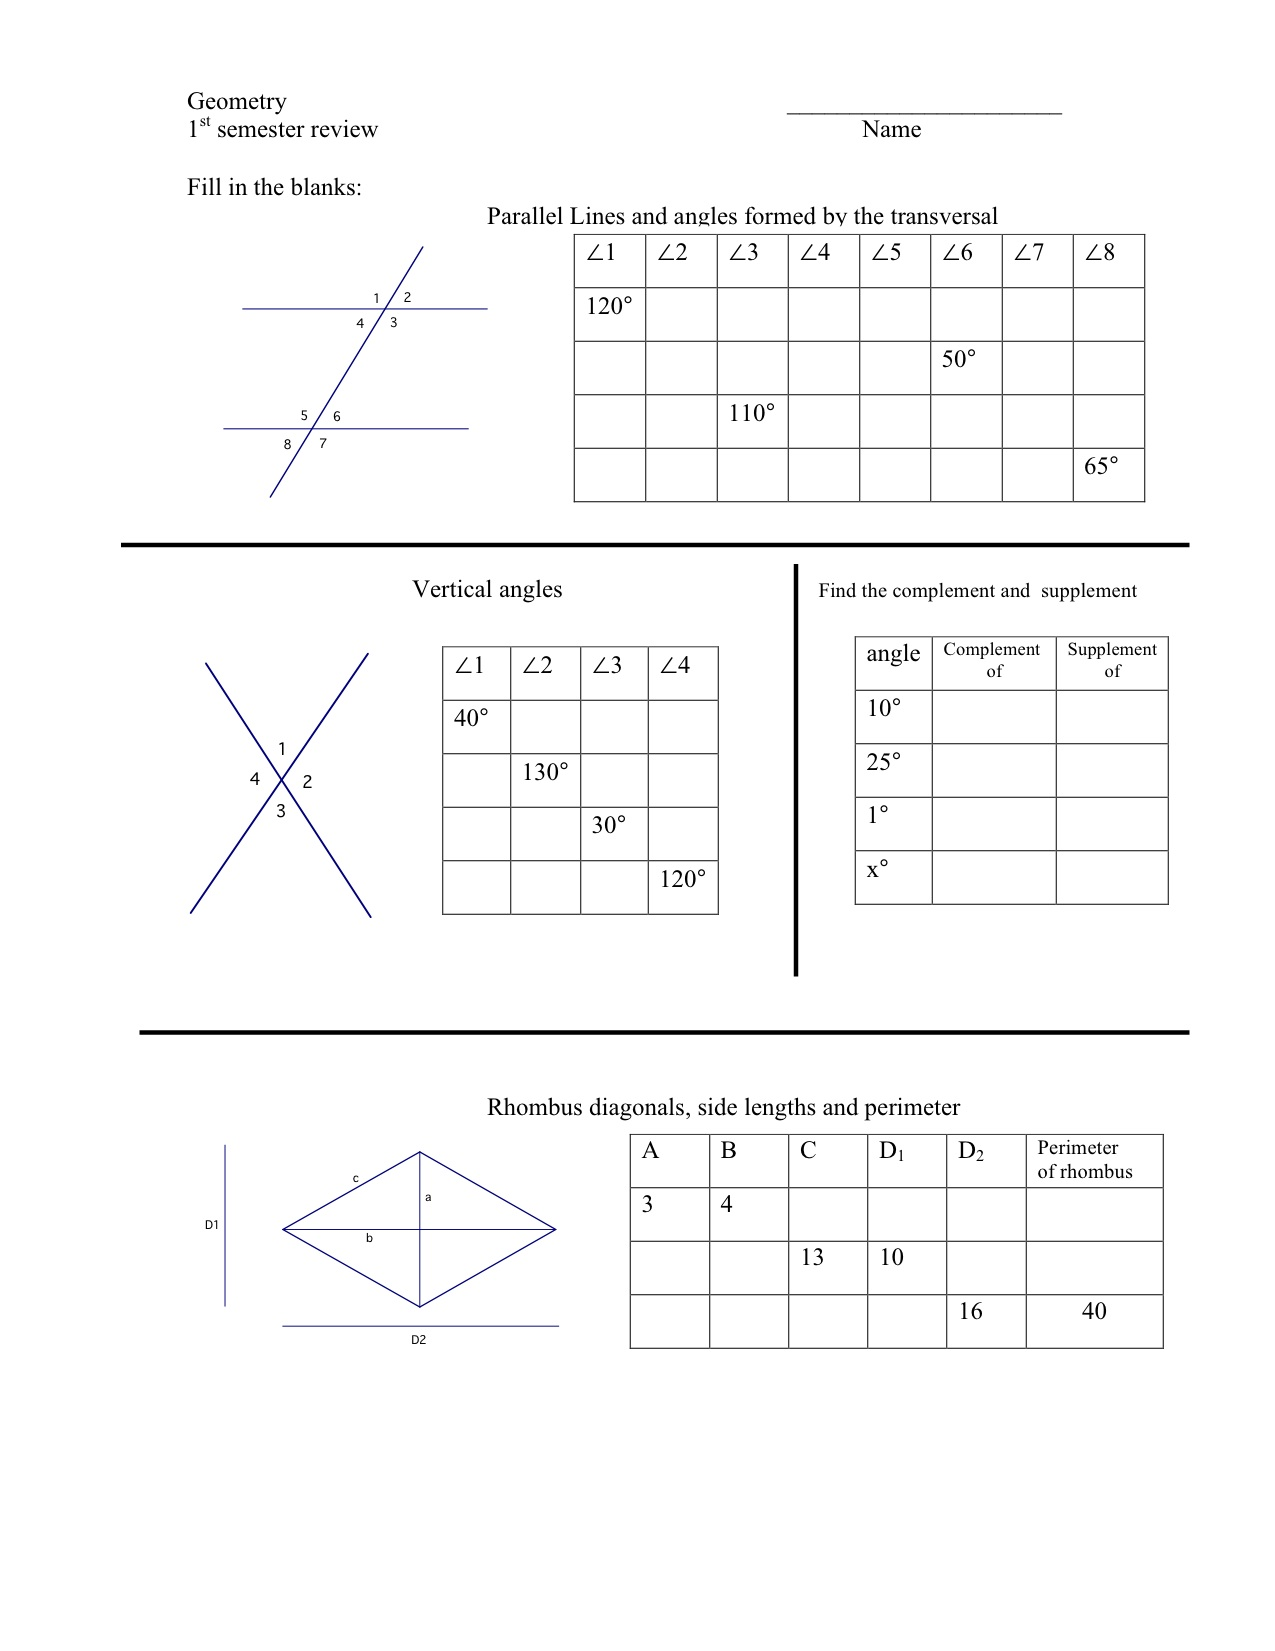 worksheet Parabola Worksheets worksheets mrmillermath 1st sem review chart2